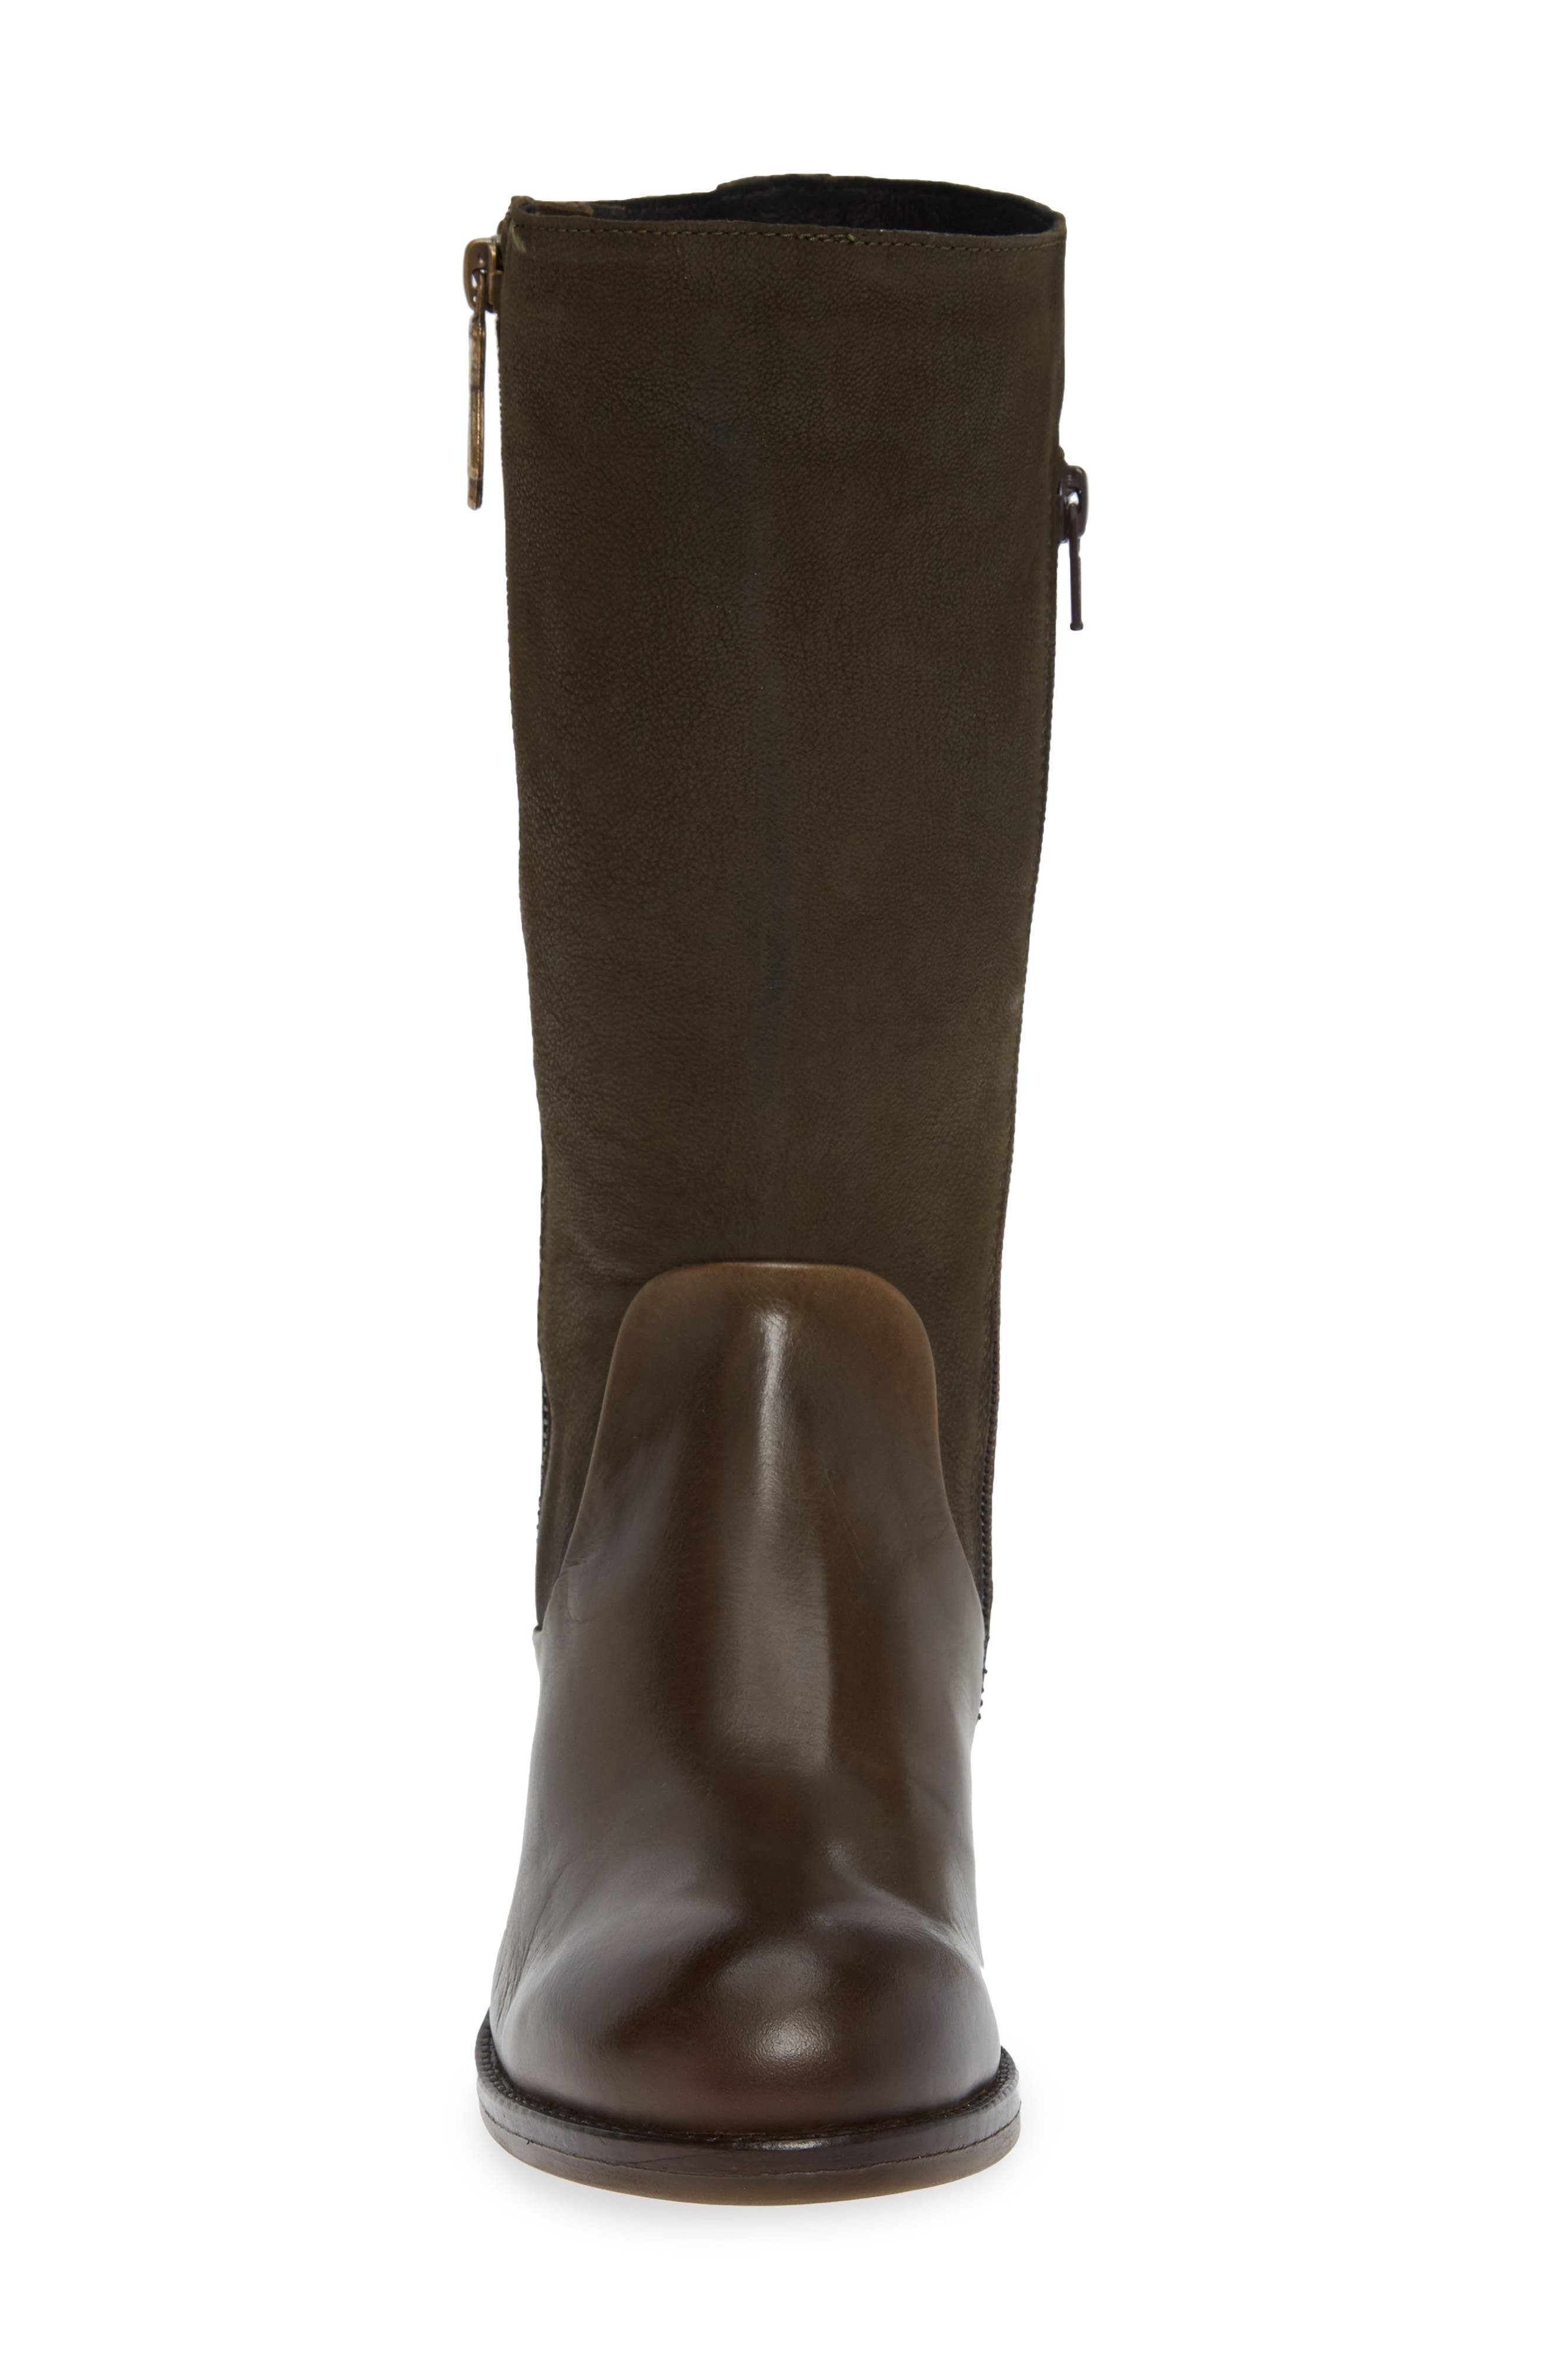 Aedi Boot,                             Alternate thumbnail 4, color,                             OLIVE/ SEAWEED LEATHER